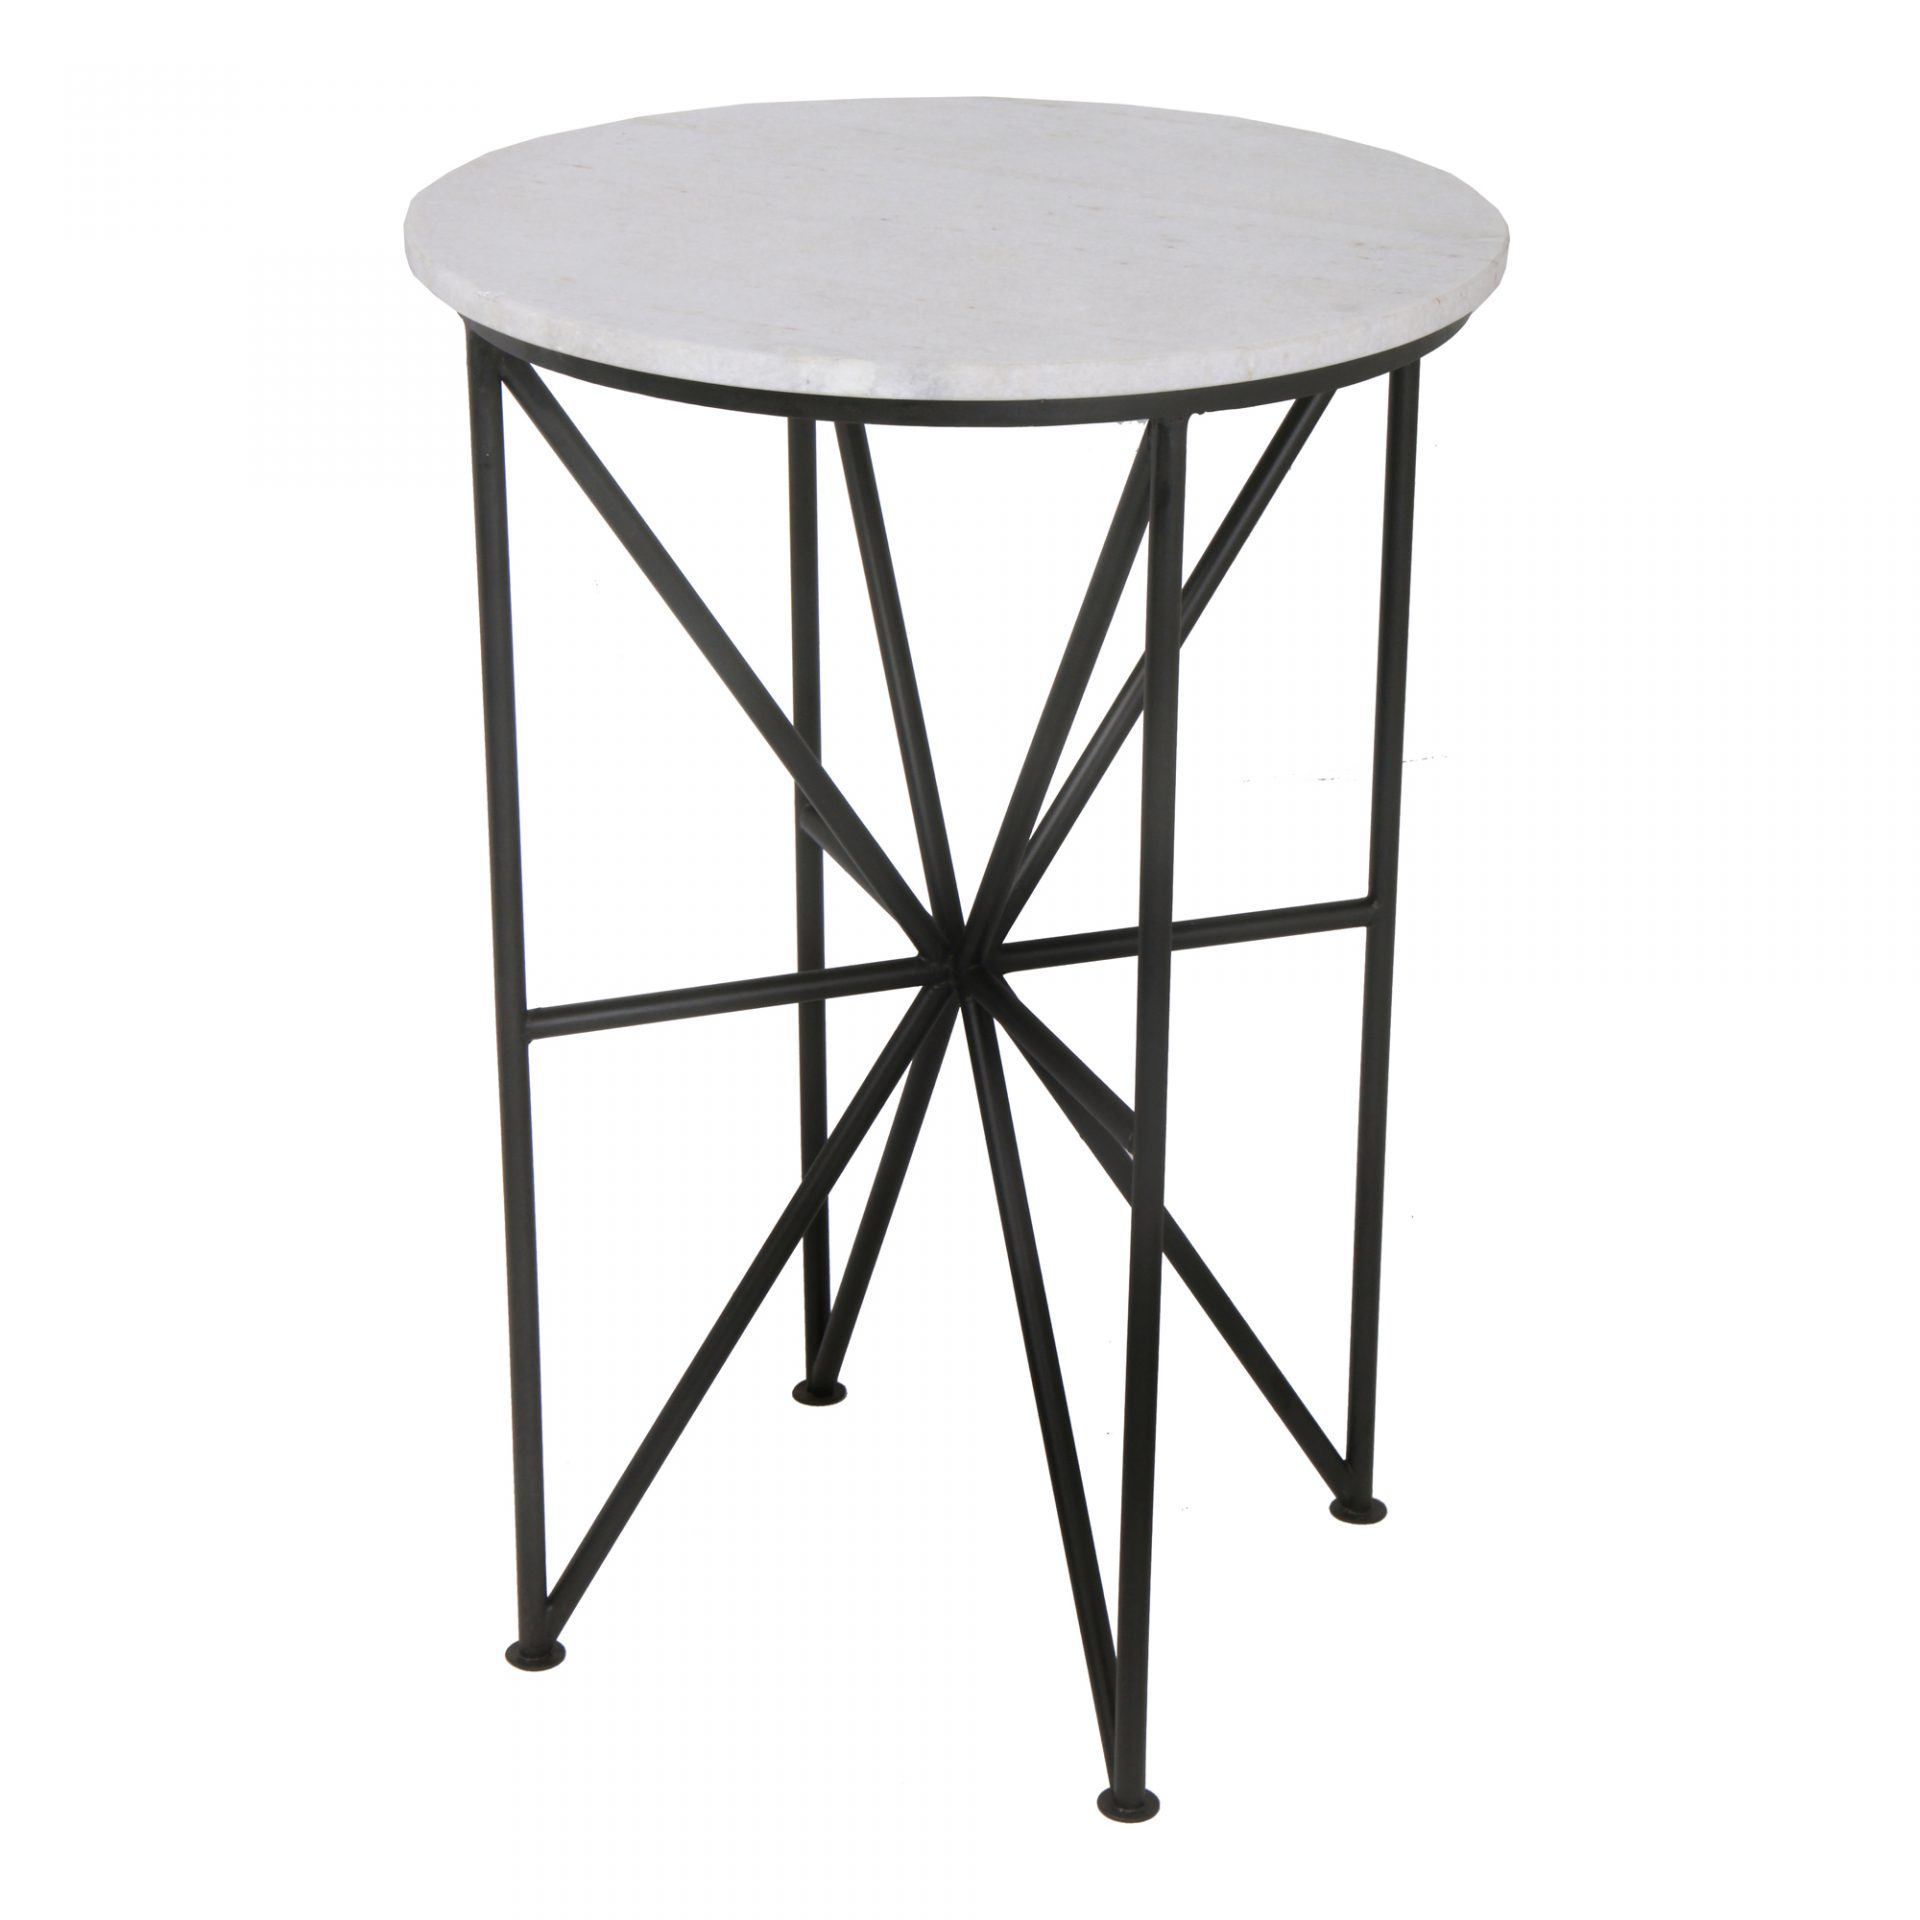 accent tables categories moe whole metal folding table quadrant marble drop leaf with storage white square coffee dining set oval cover target sofa wooden bedside lamps ikea